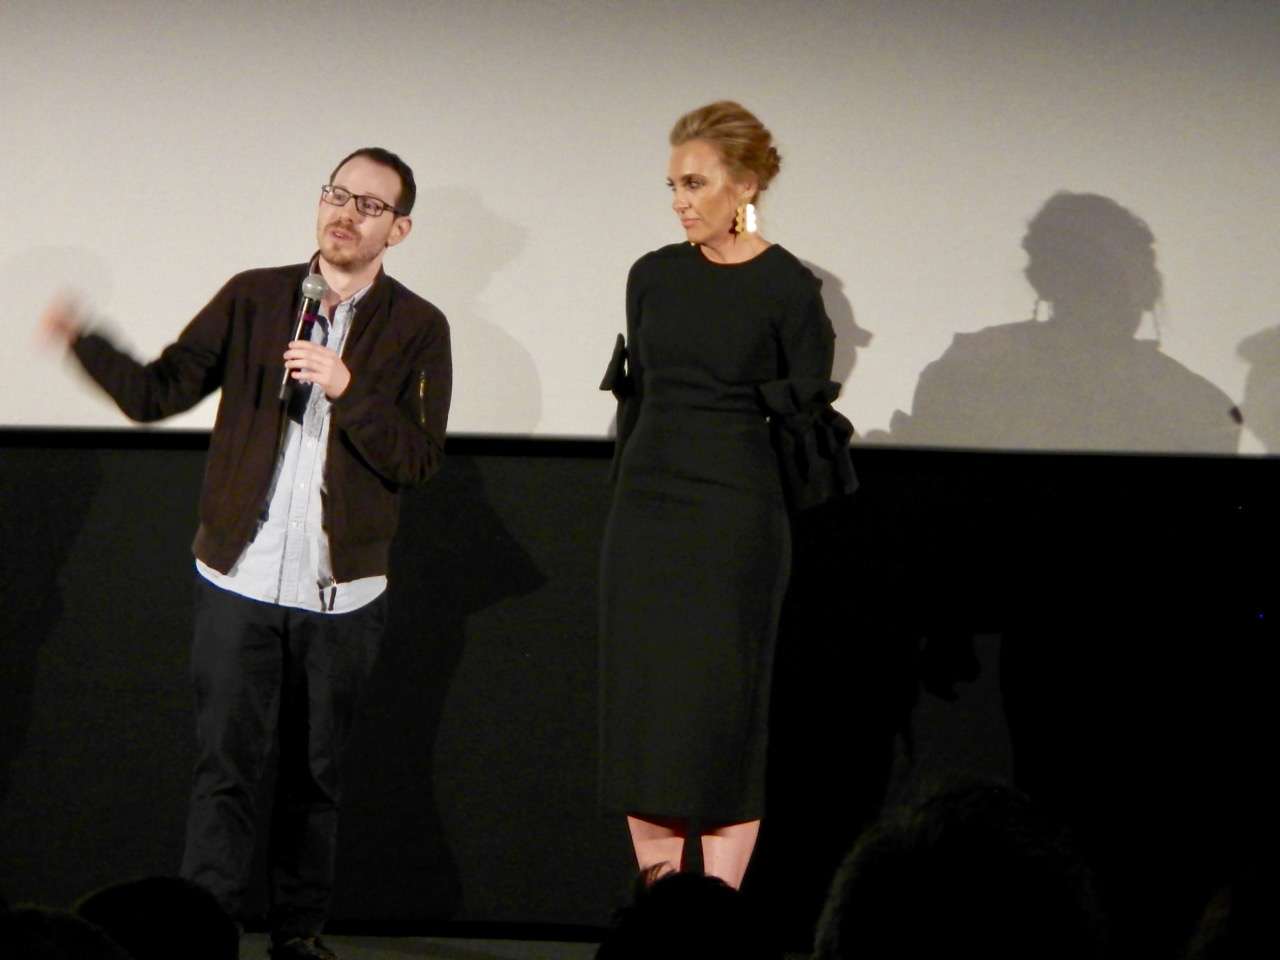 File:Hereditary Director Ari Aster with Toni Collette.jpg - Wikimedia  Commons